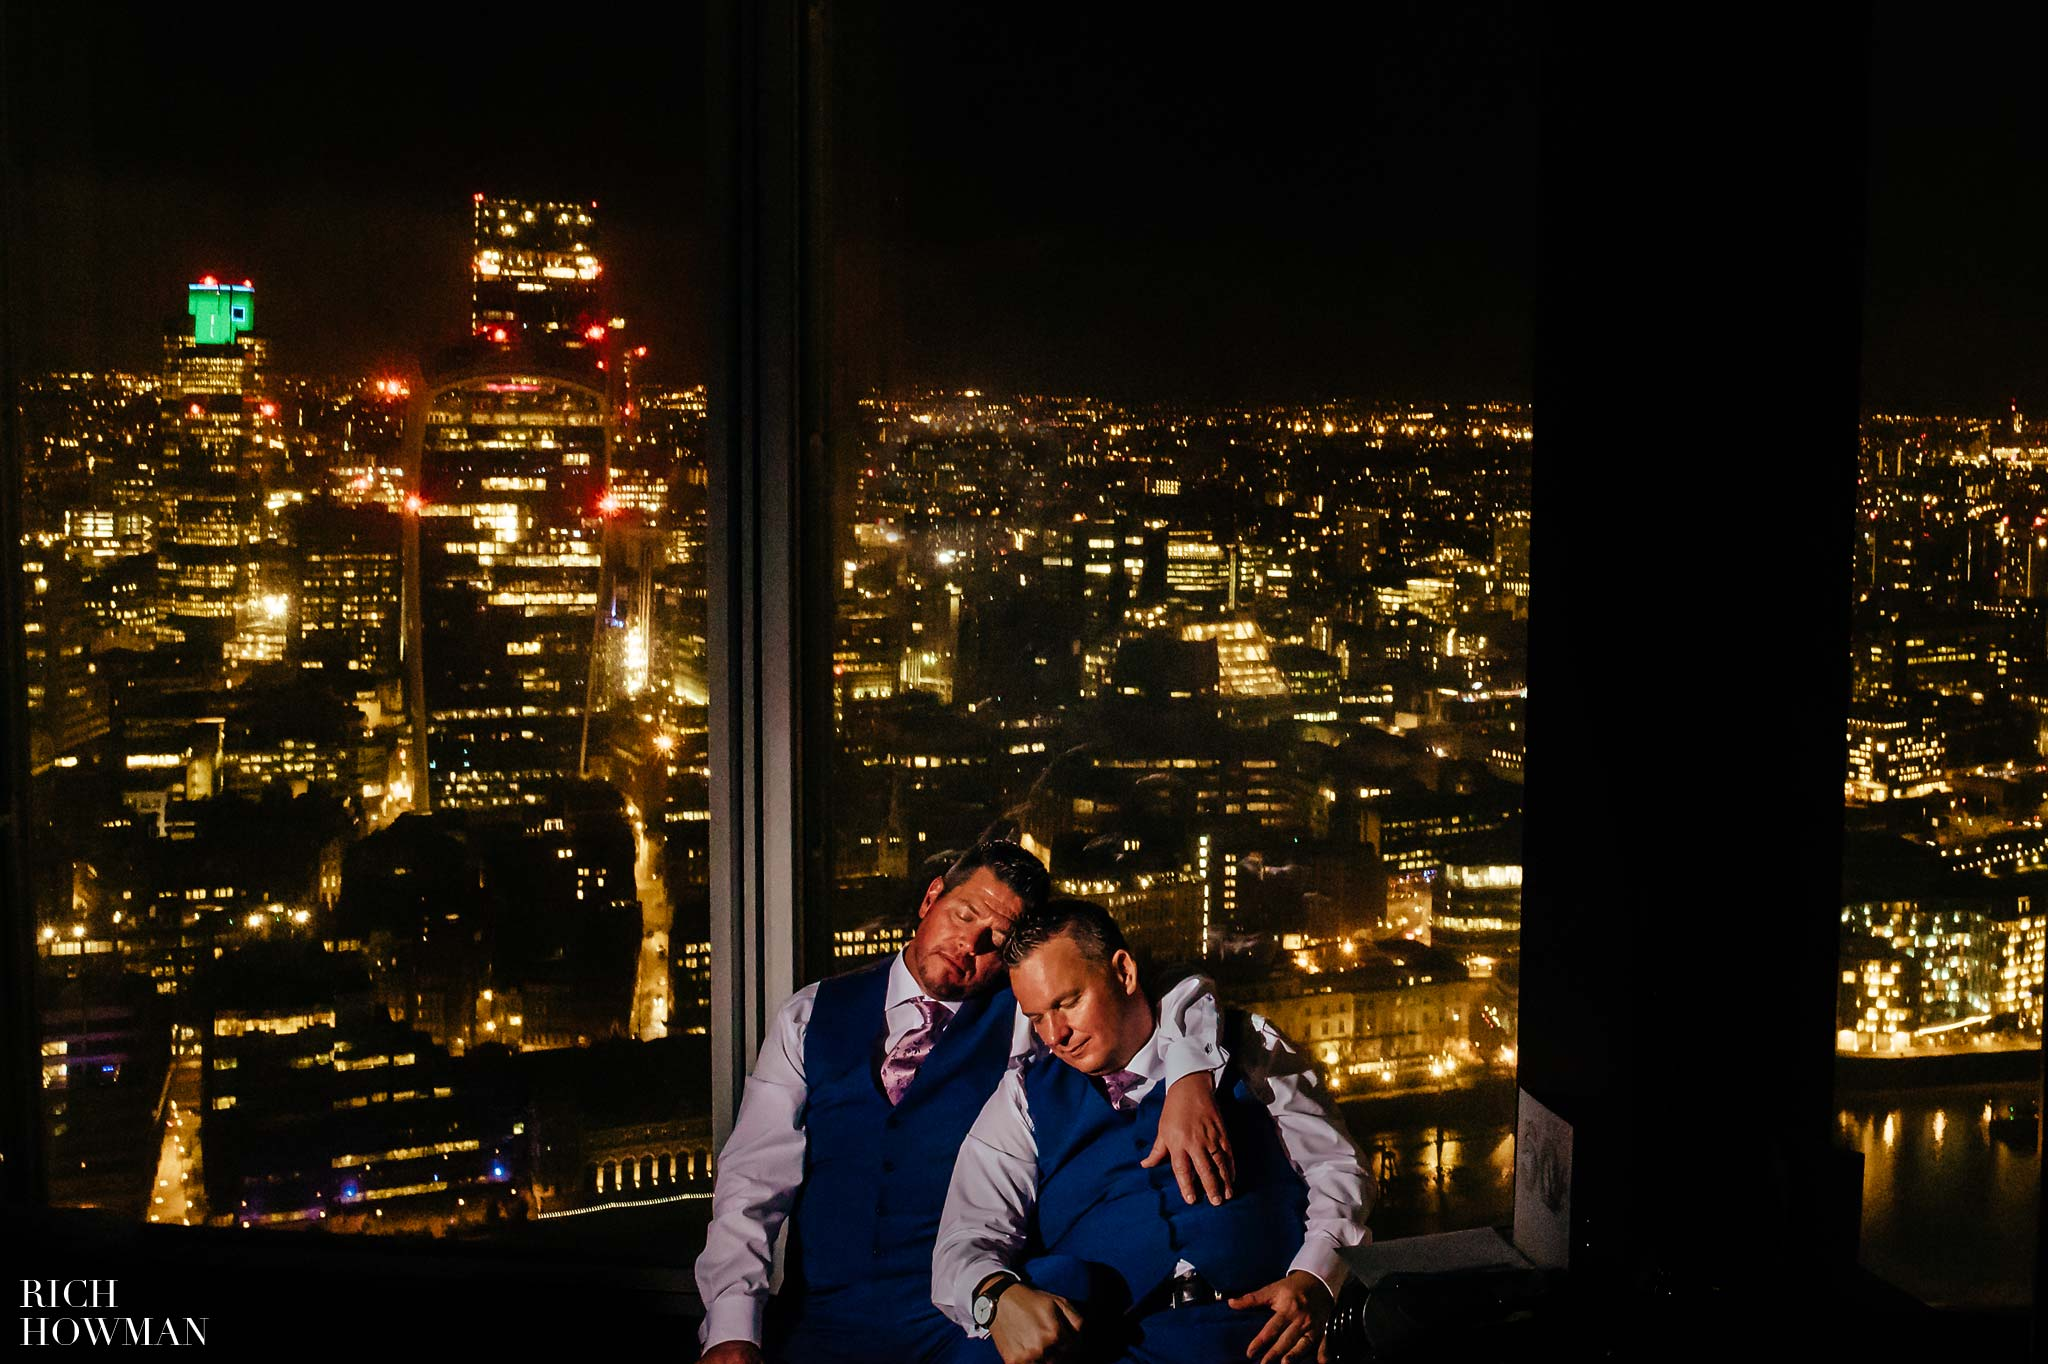 Wedding at the Shard - Gay Wedding at the Shard in London by Photographer Rich Howman